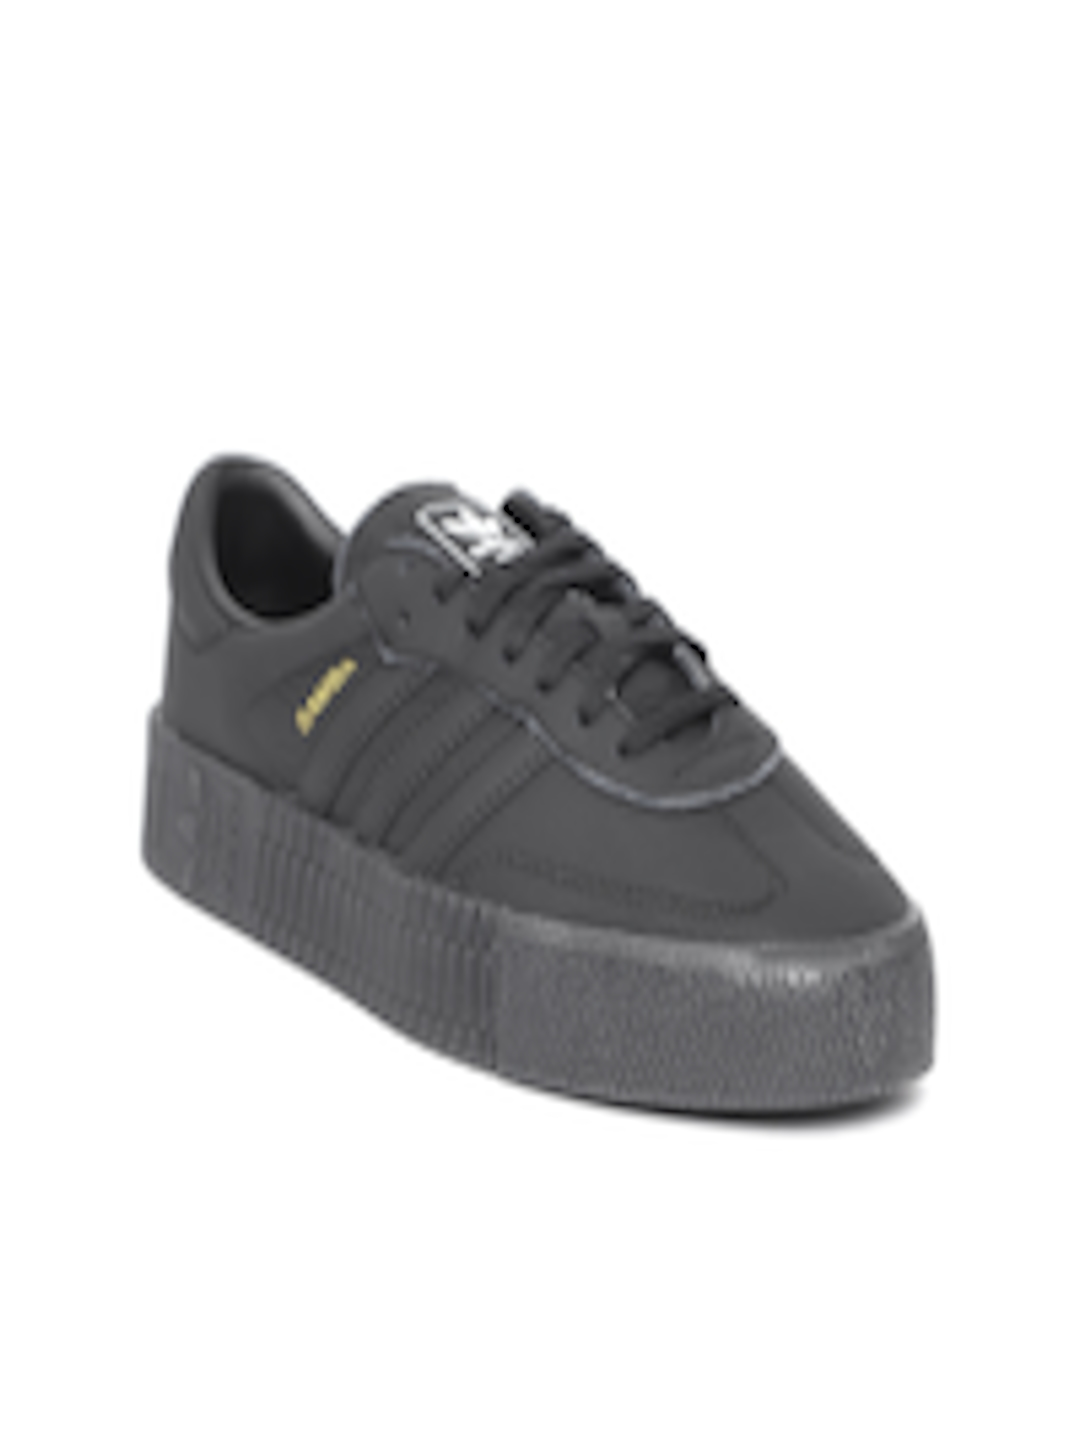 98cefb51a0b2 Buy Adidas Originals Women Black SAMBAROSE Leather Sneakers - Casual Shoes  for Women 6842290